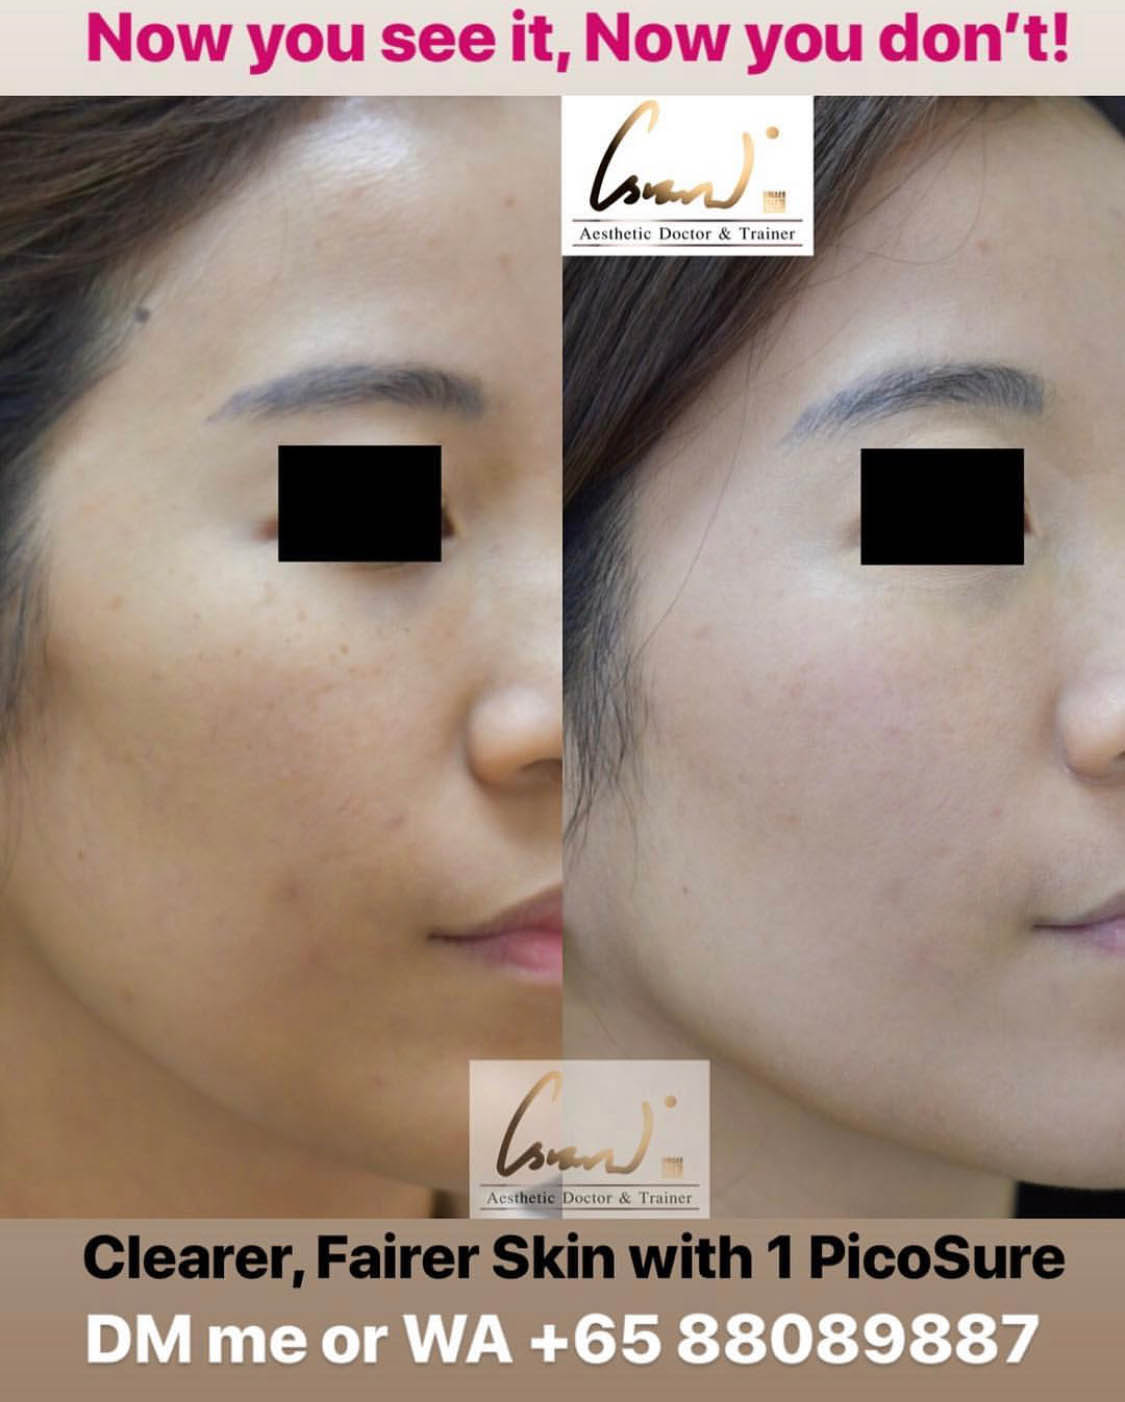 PicoSure Results